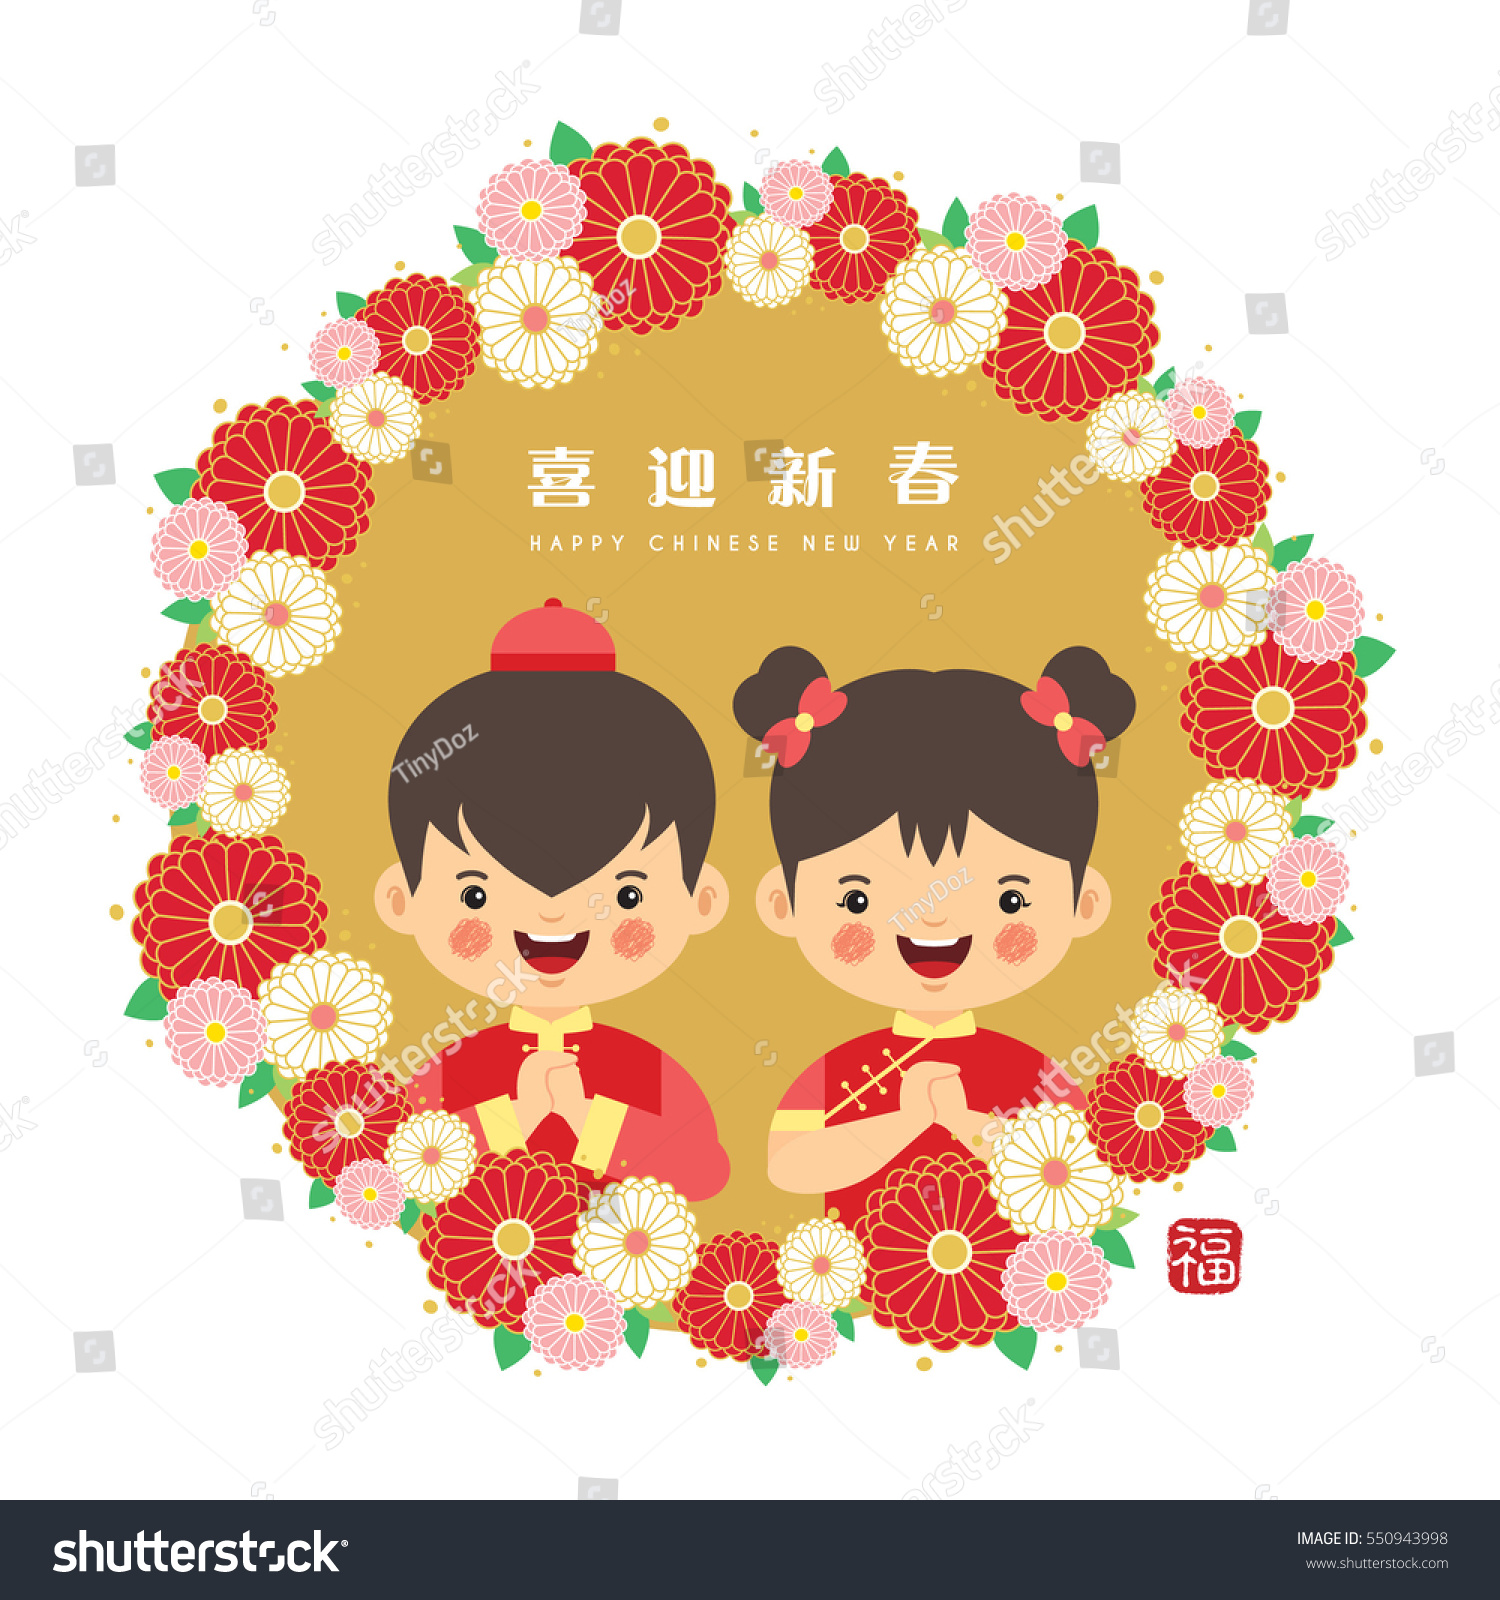 Chinese New Year Greetings Cute Chinese Stock Vector Royalty Free